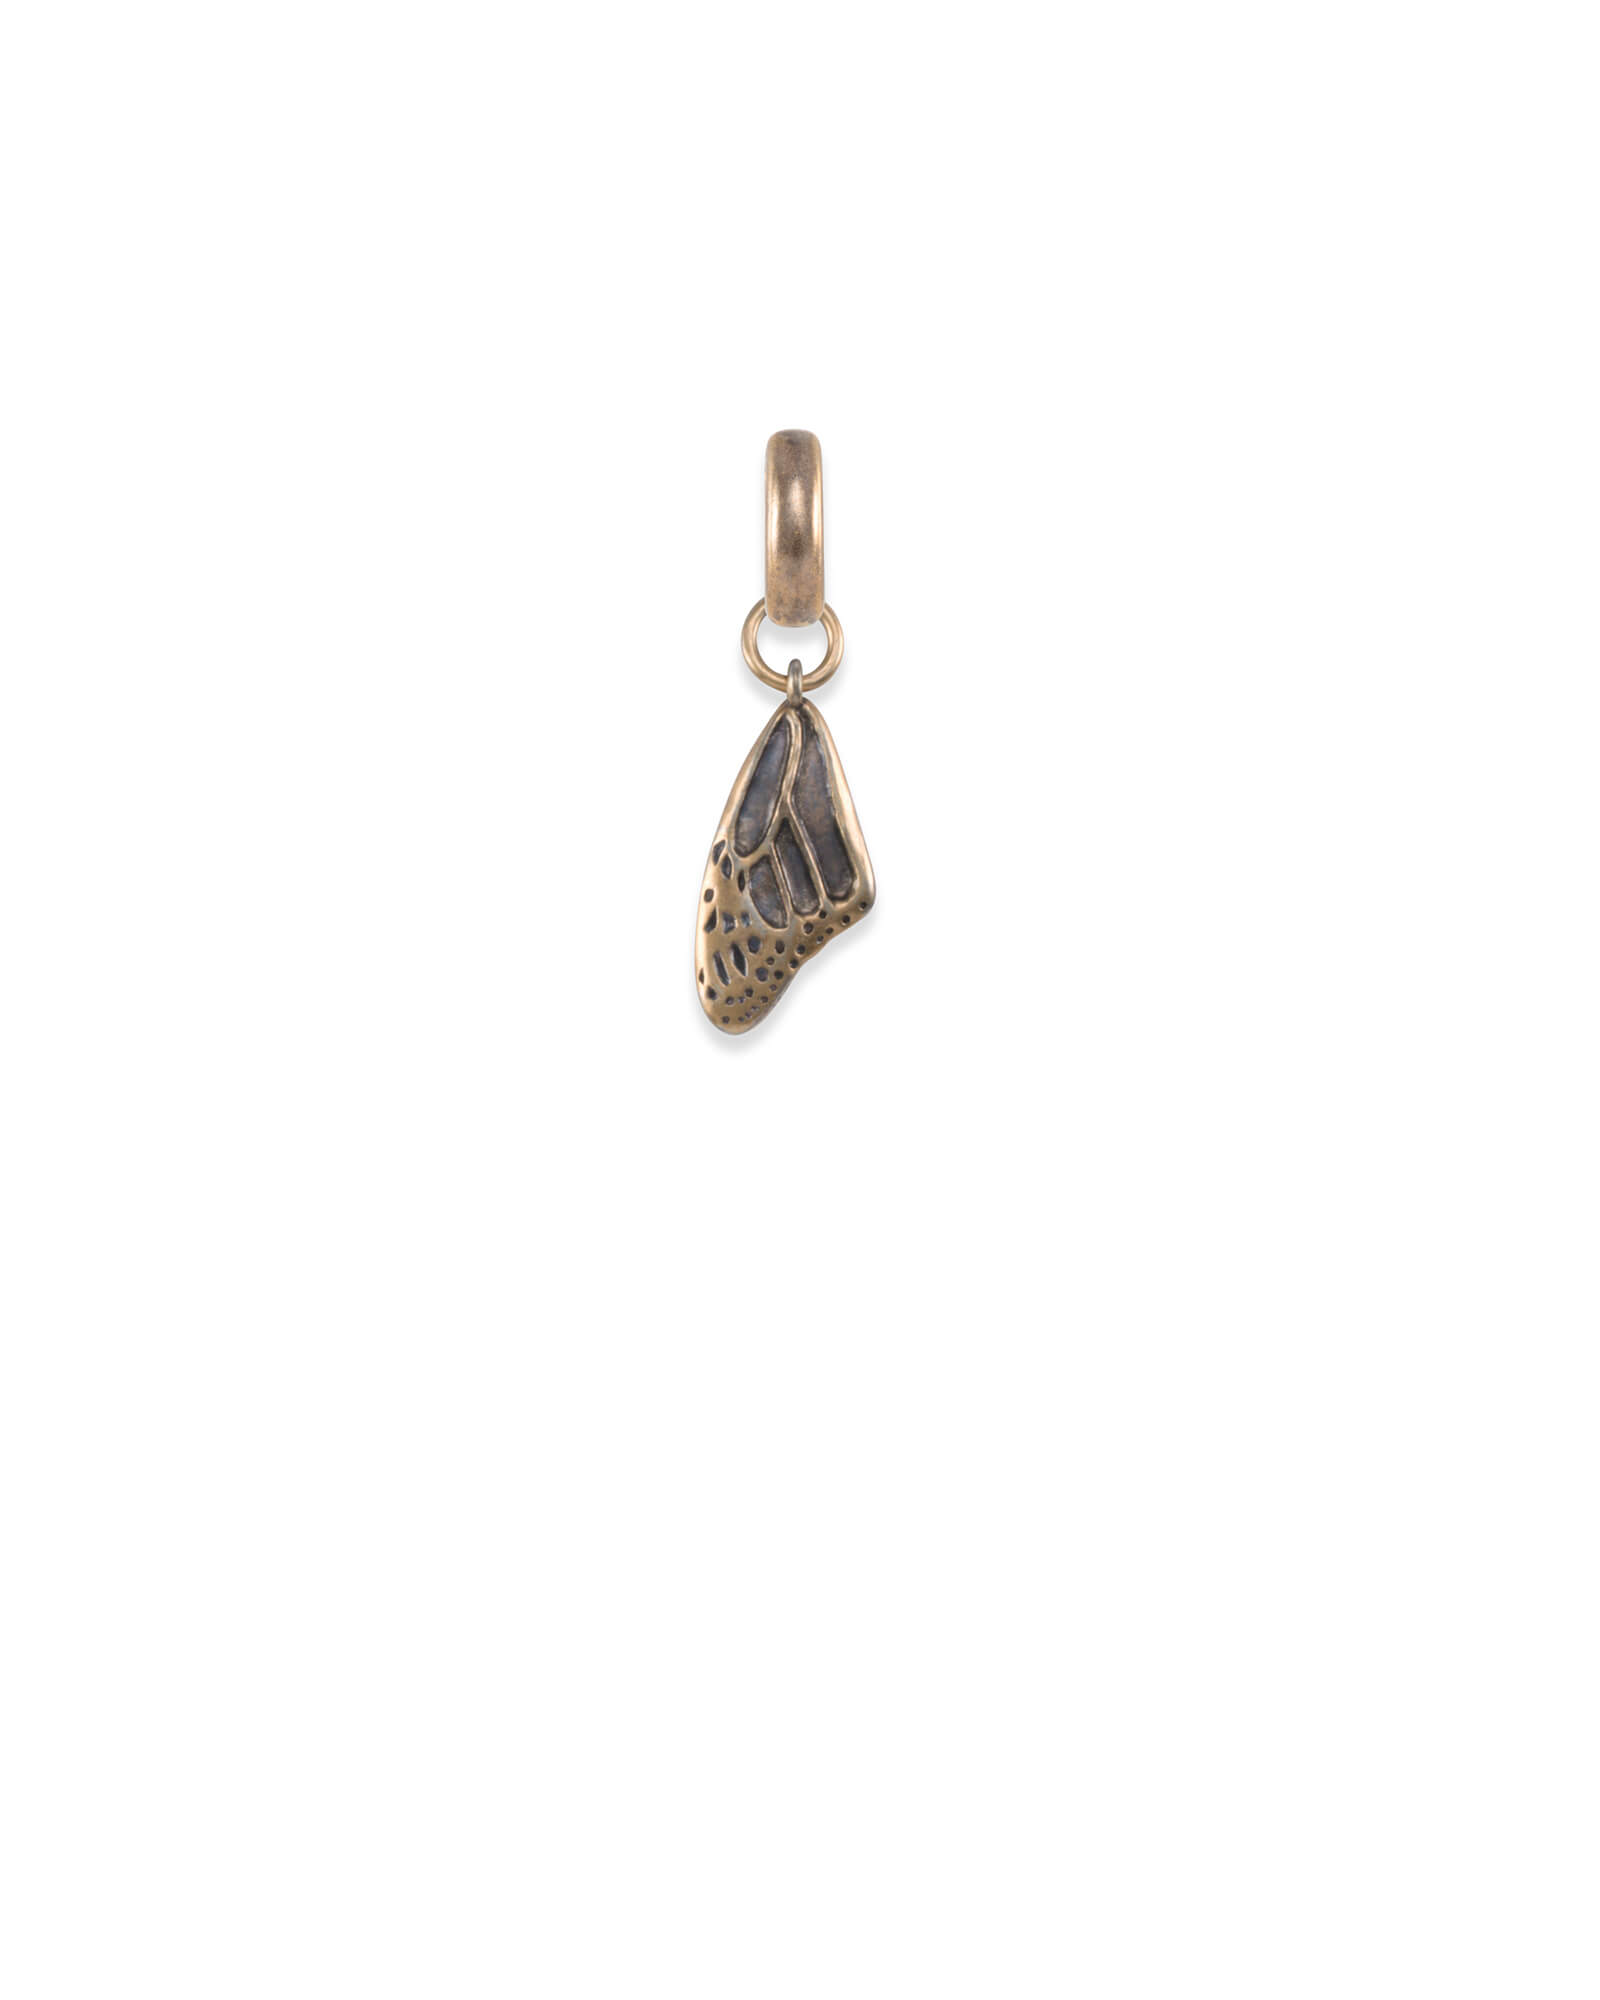 Breast Cancer Butterfly Wing Charm in Vintage Gold